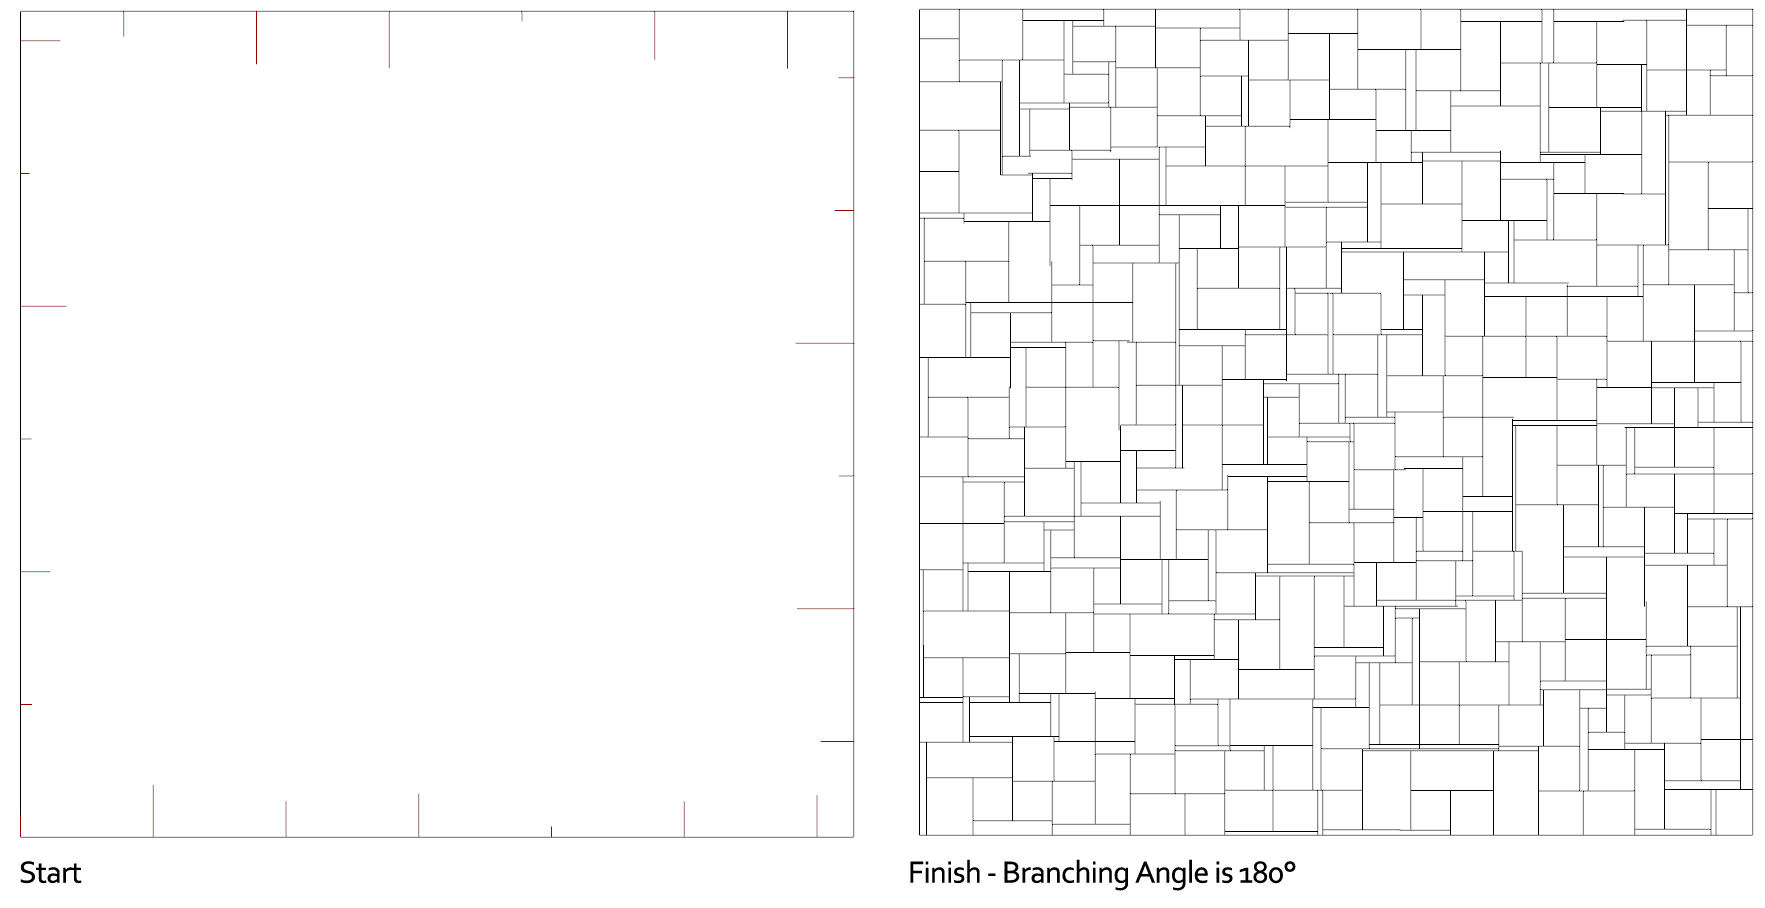 Growing and branching lines with regular starting conditions g04v02endg ccuart Choice Image